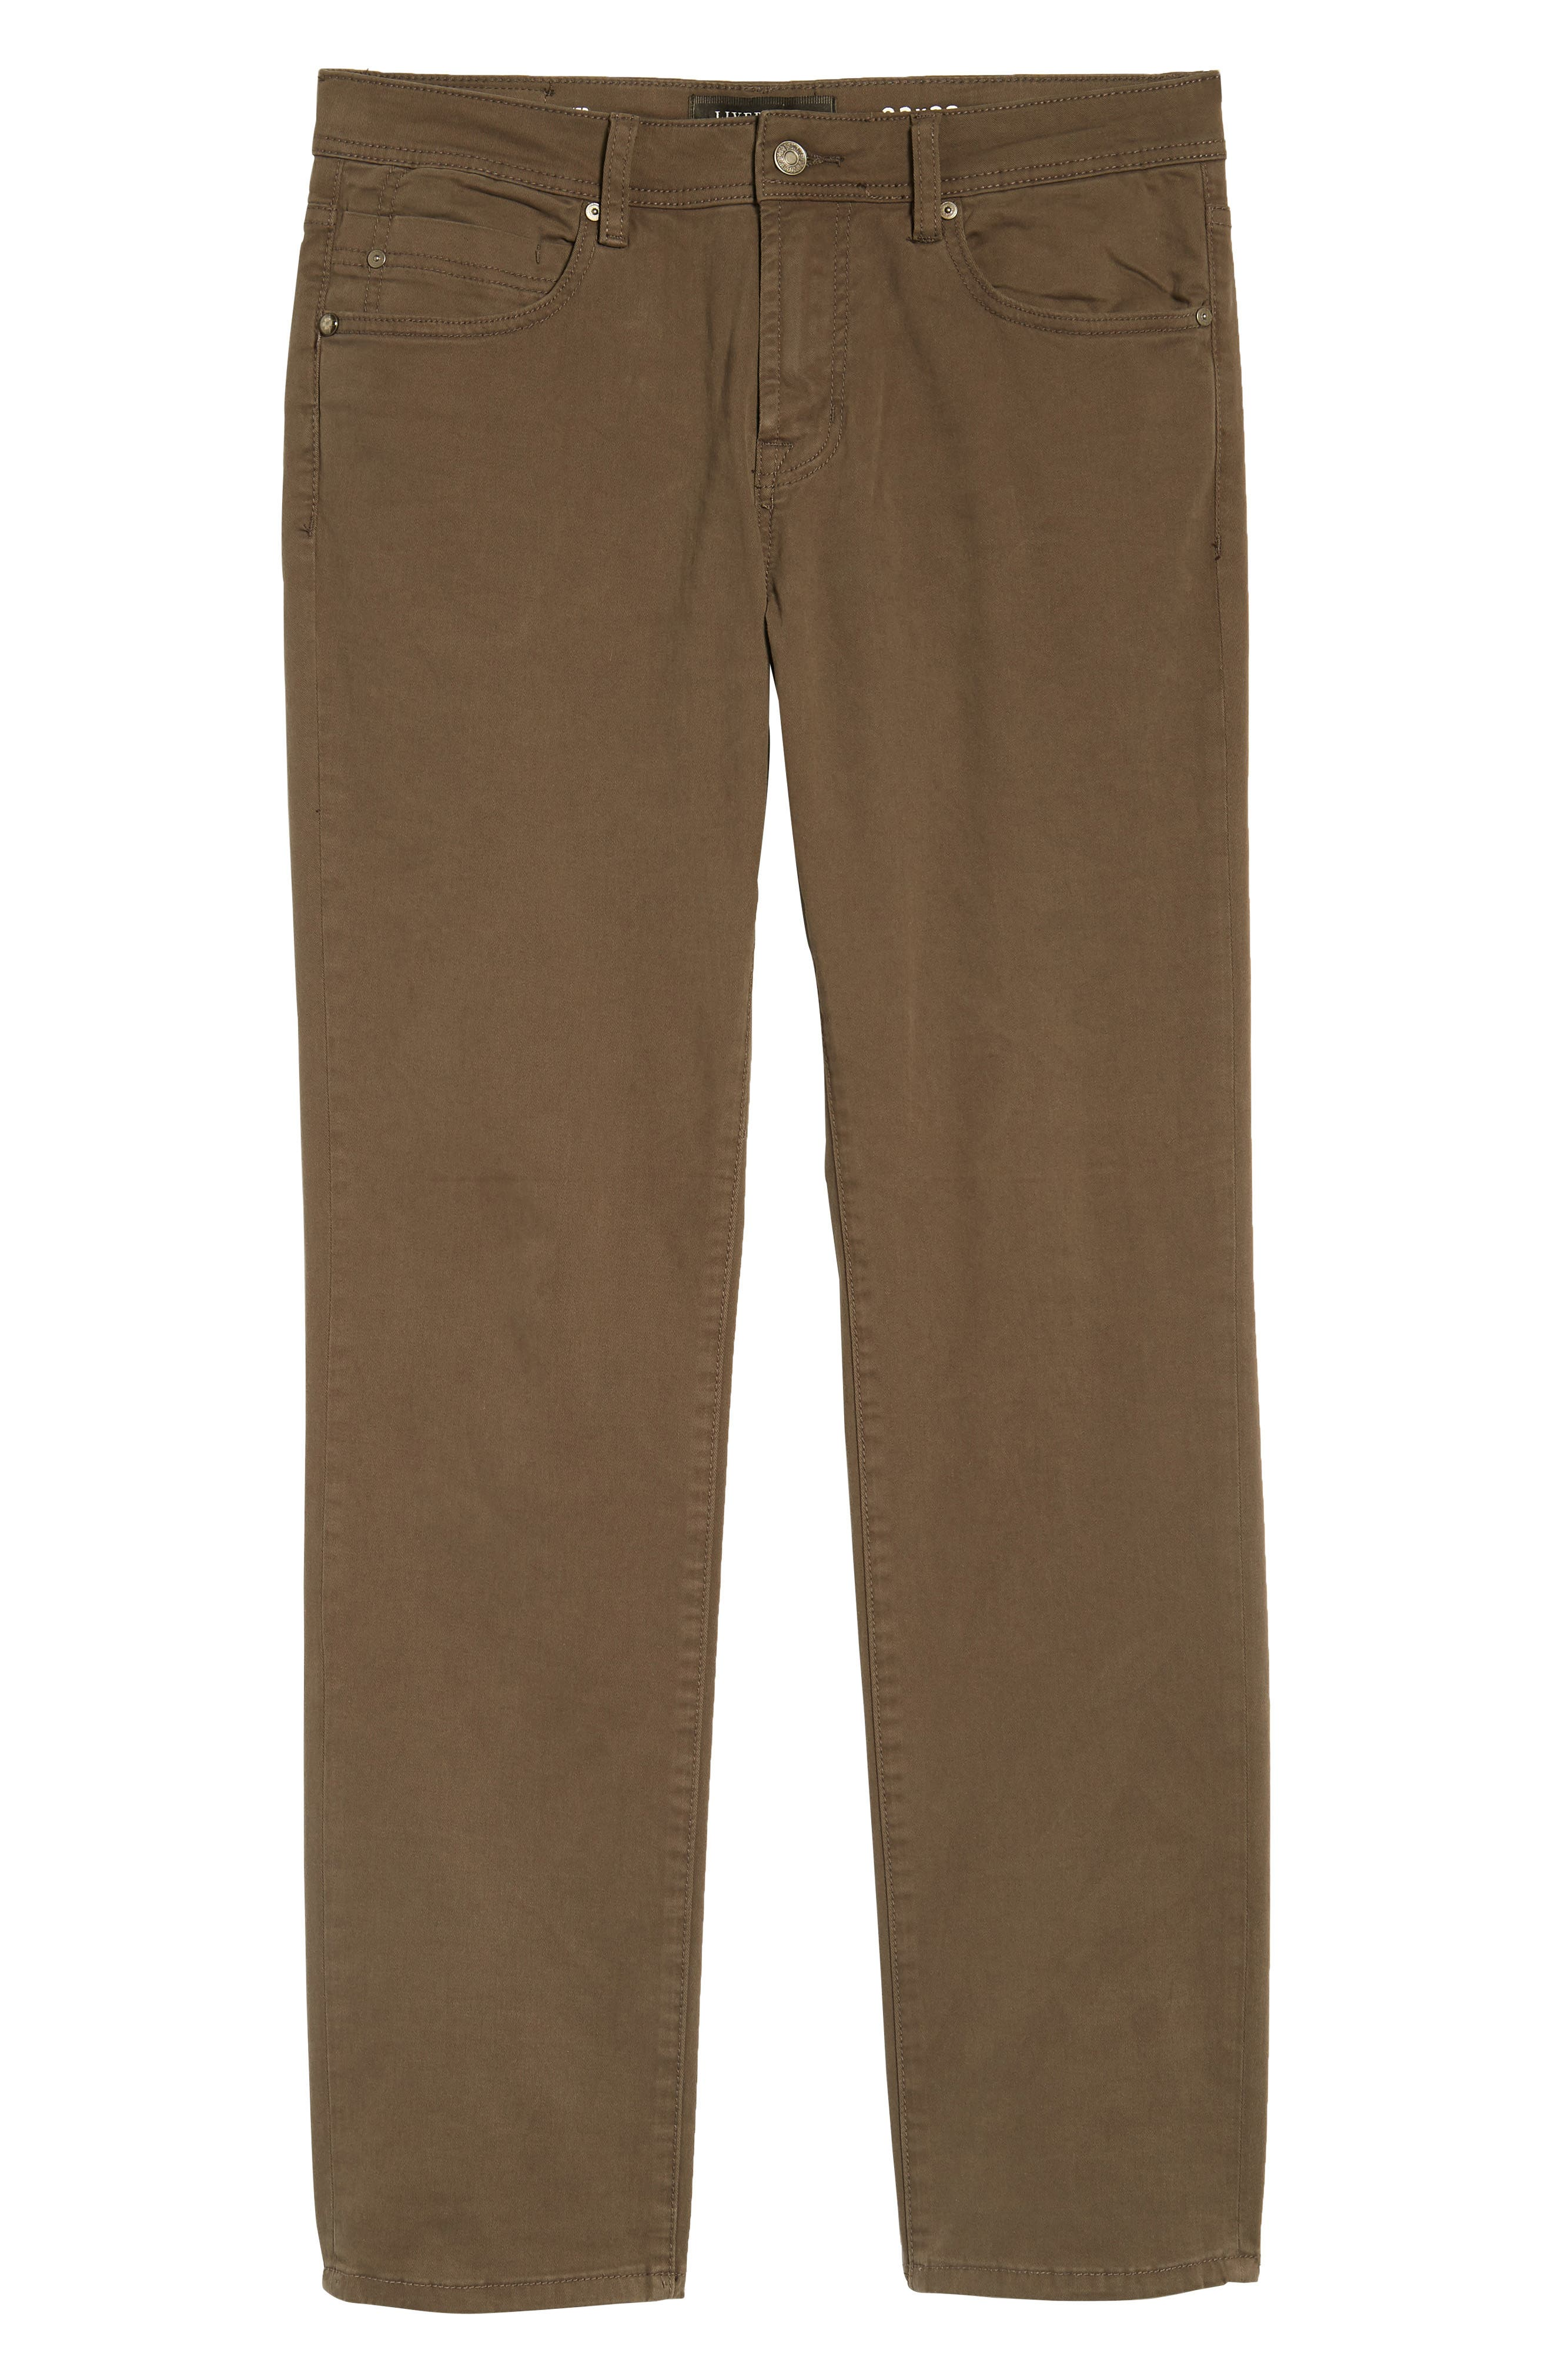 LIVERPOOL, Regent Relaxed Straight Leg Twill Pants, Alternate thumbnail 7, color, DEEP EARTH